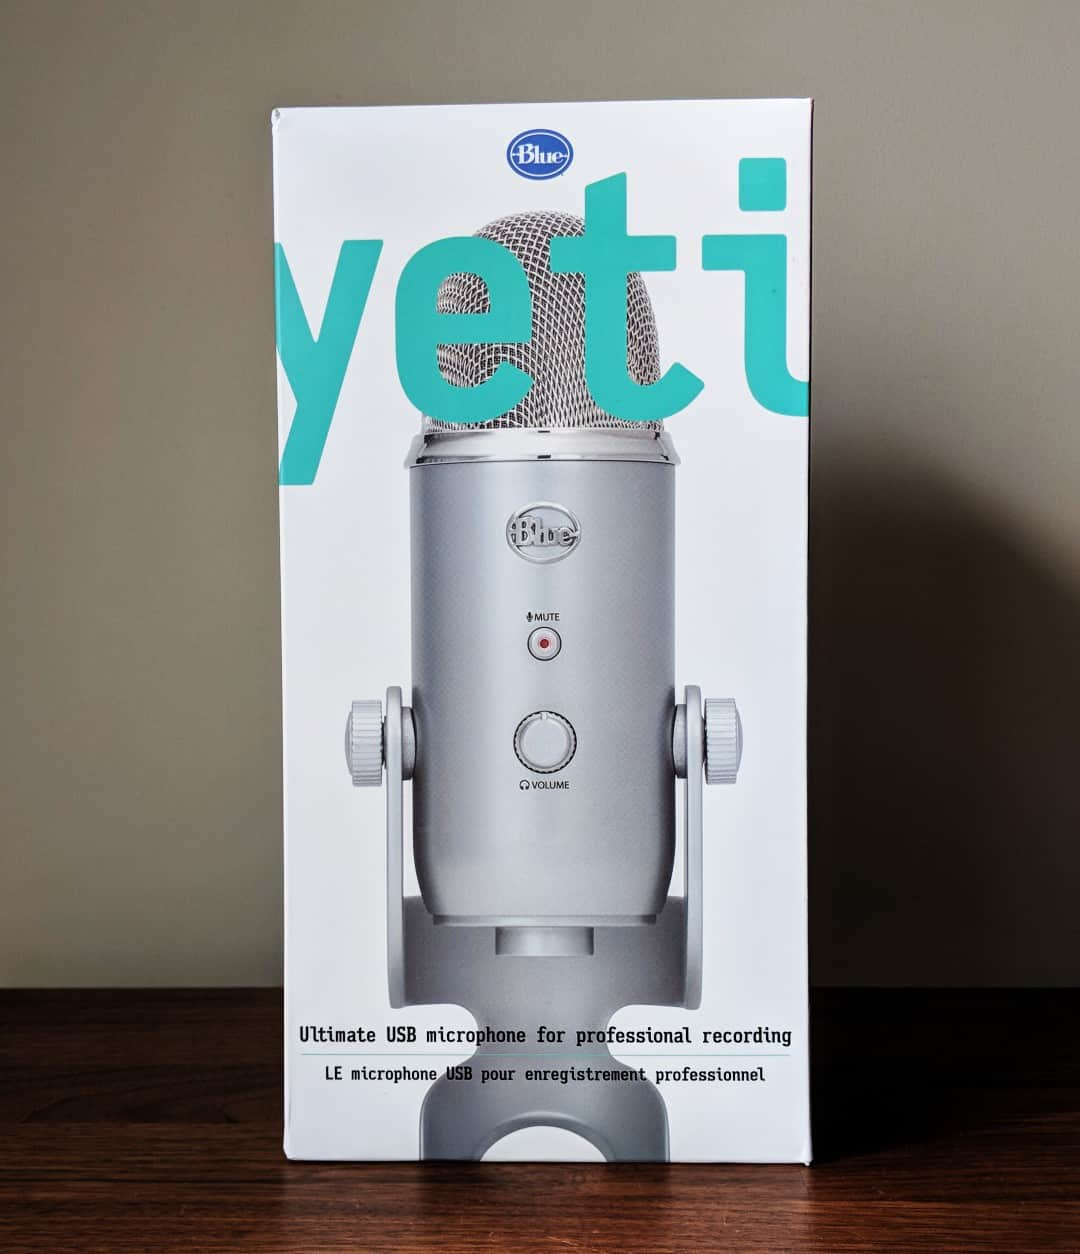 Blue-Yeti-Photos-23 Blue Yeti Microphone Review